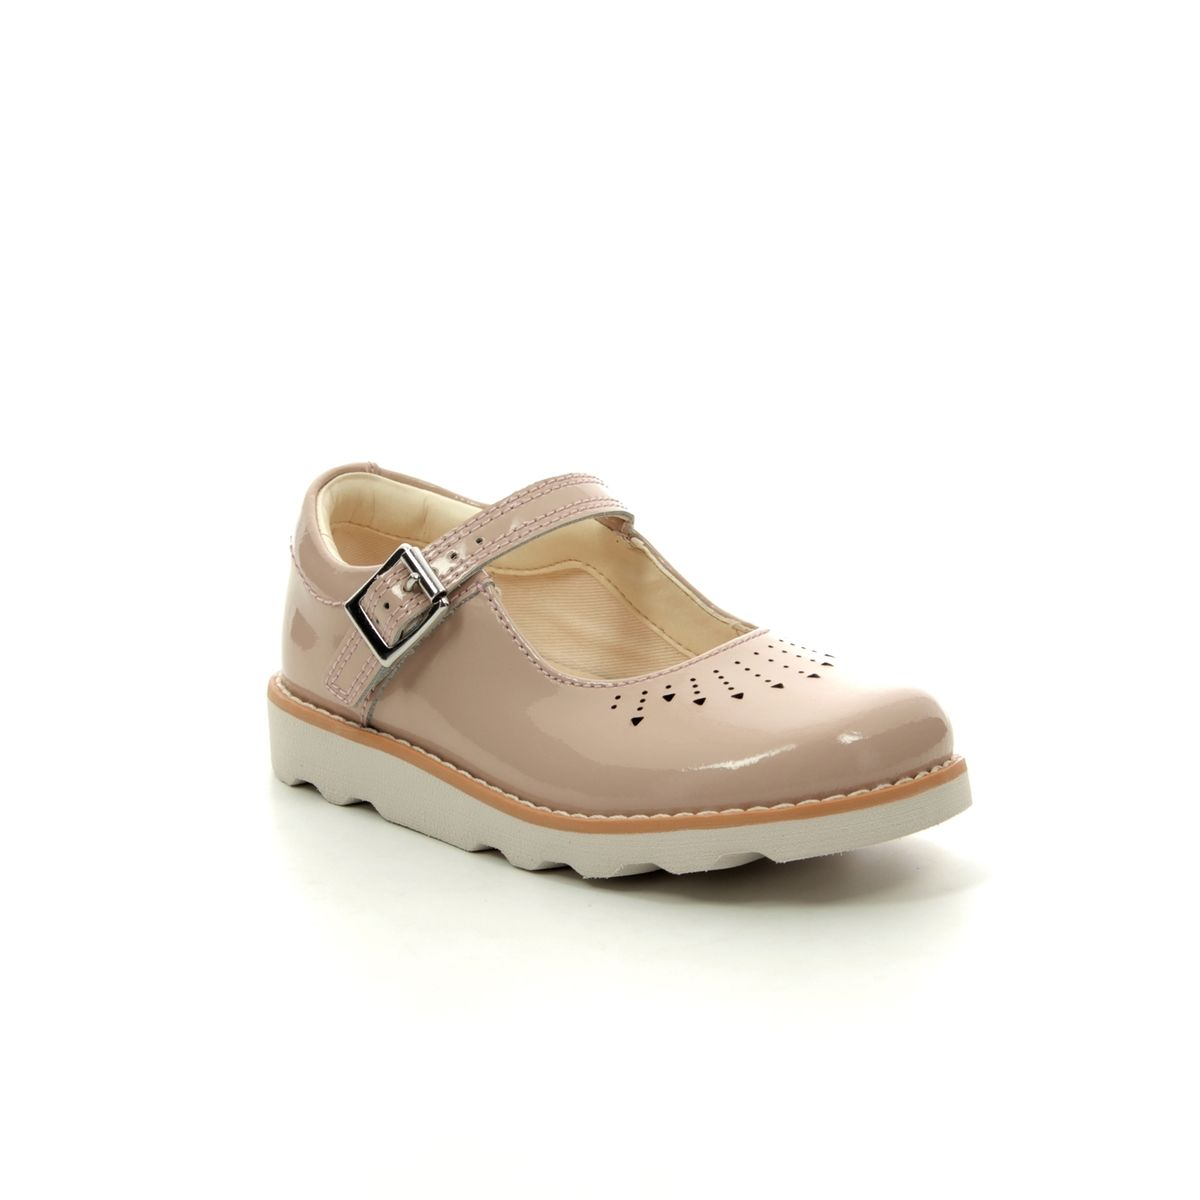 6cc5e29156627 Clarks First Shoes - Nude Patent - 415397G CROWN JUMP T